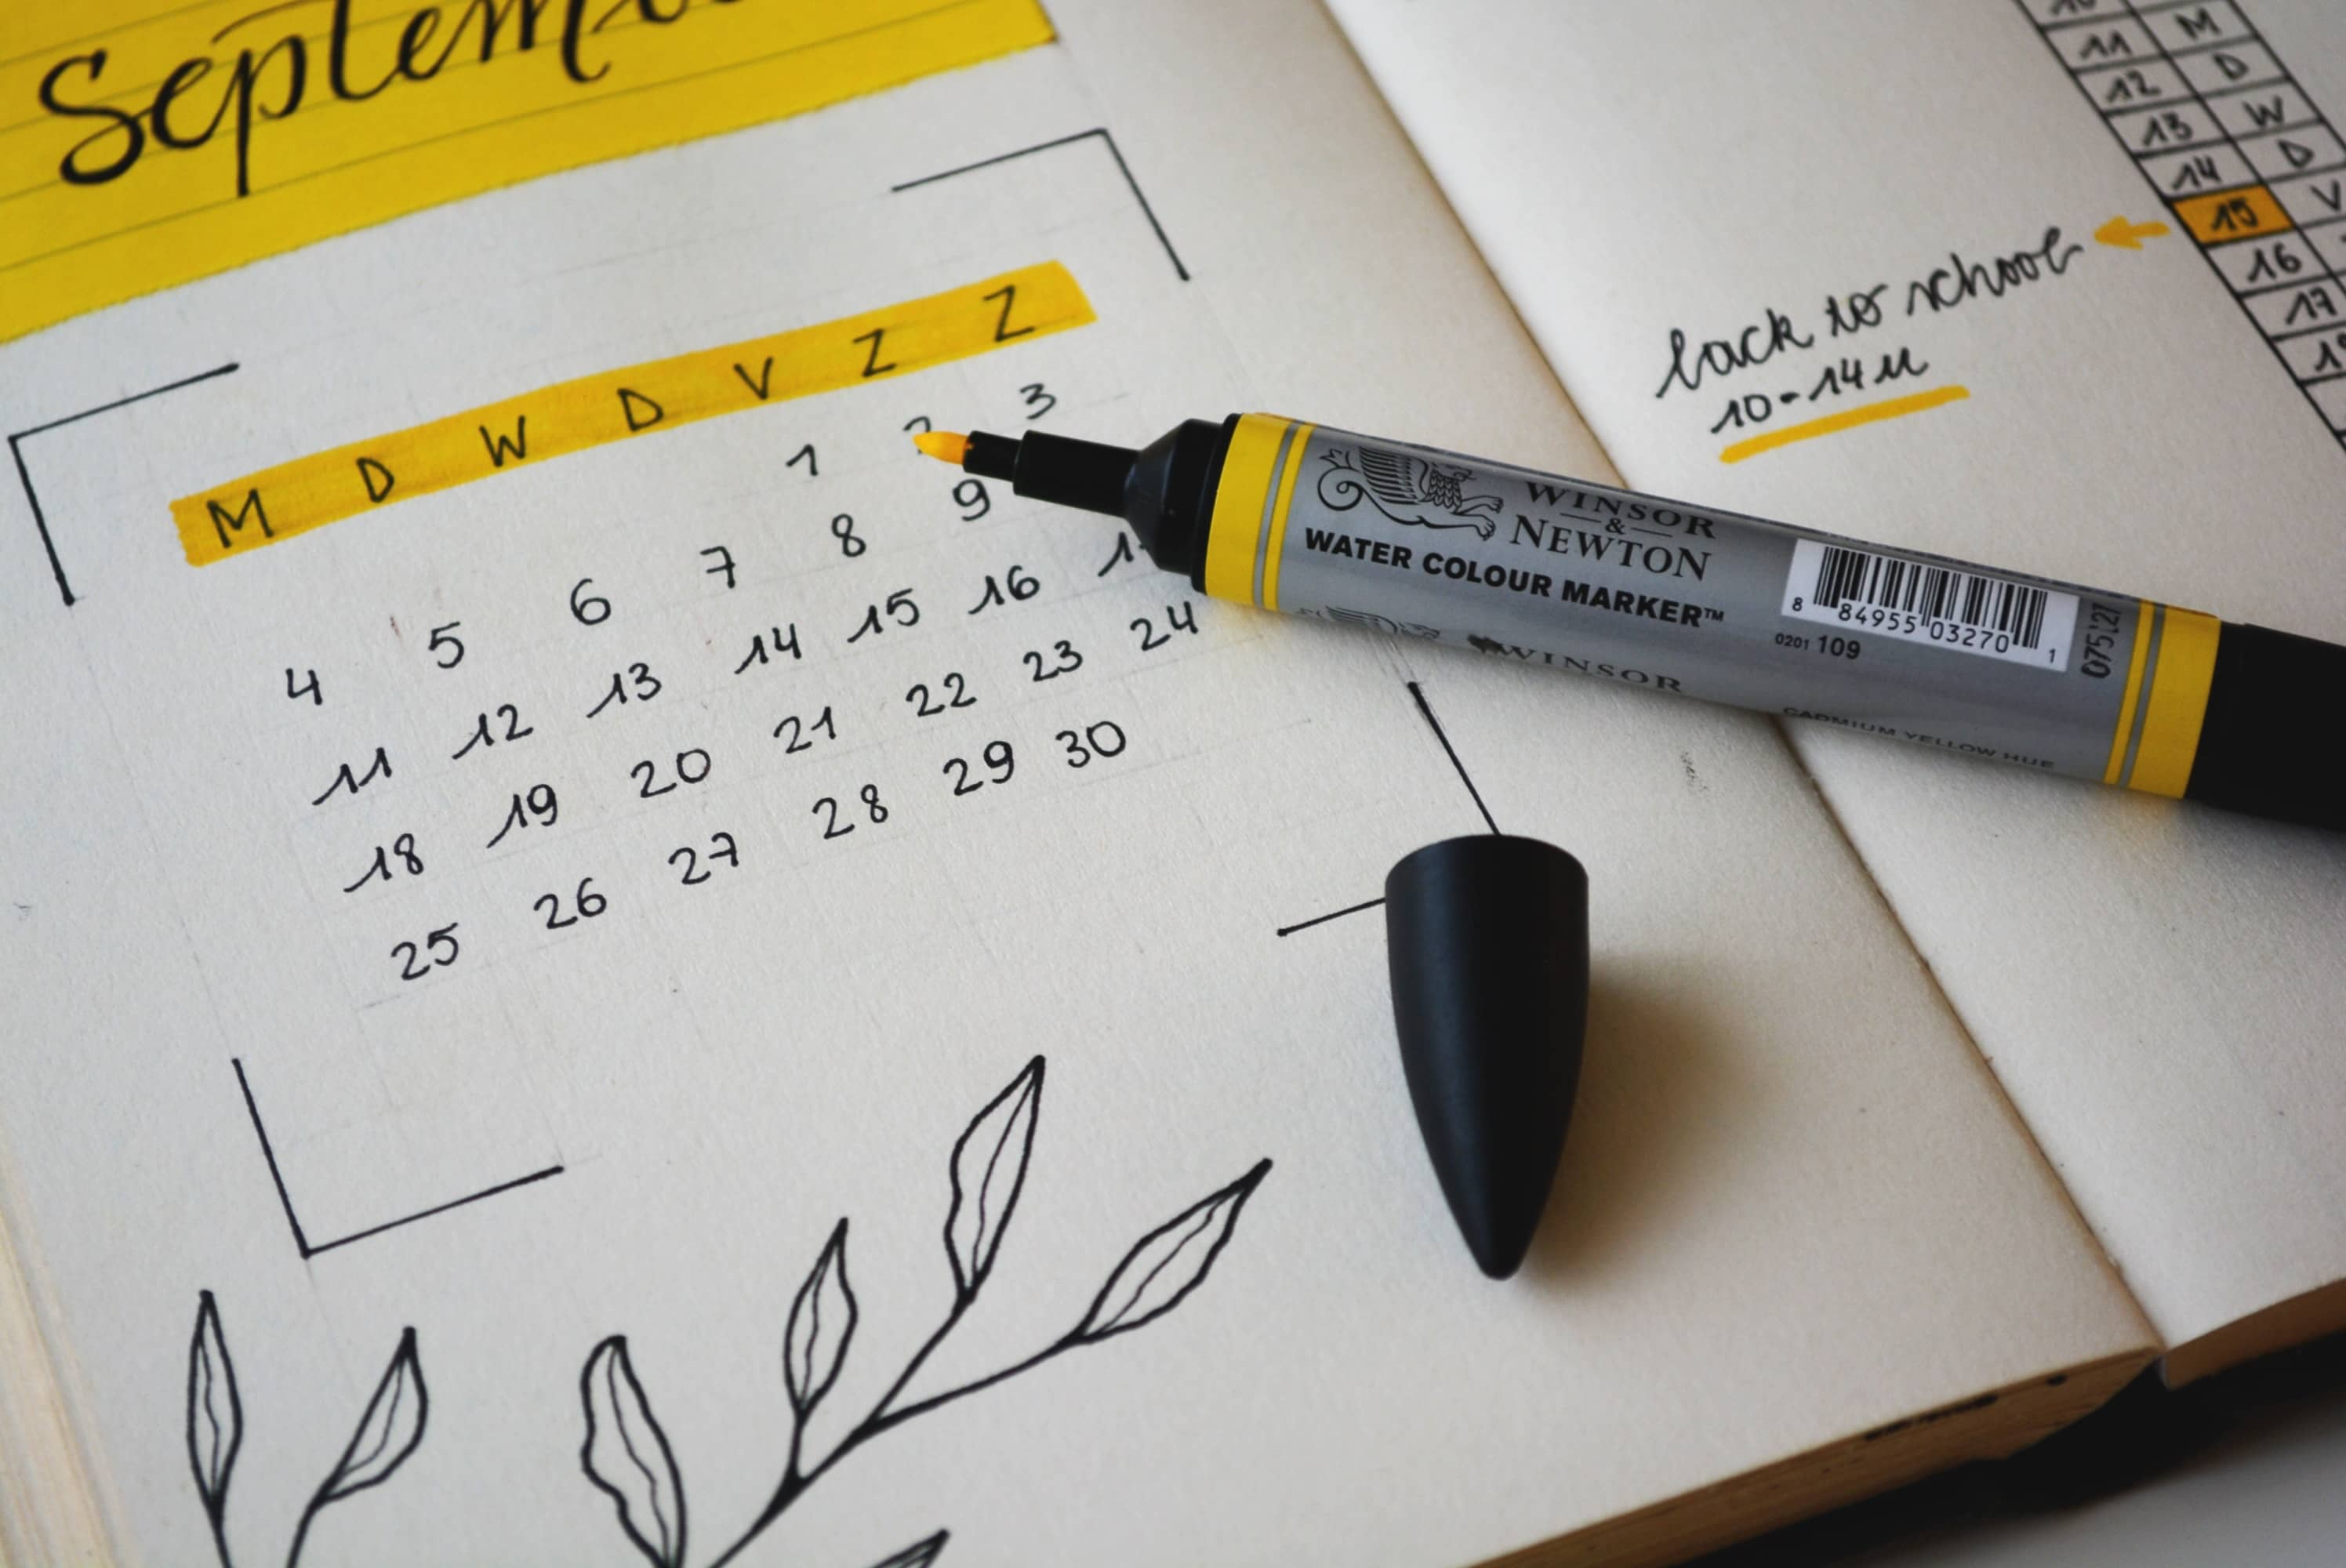 2021 calendar and yellow highlighter